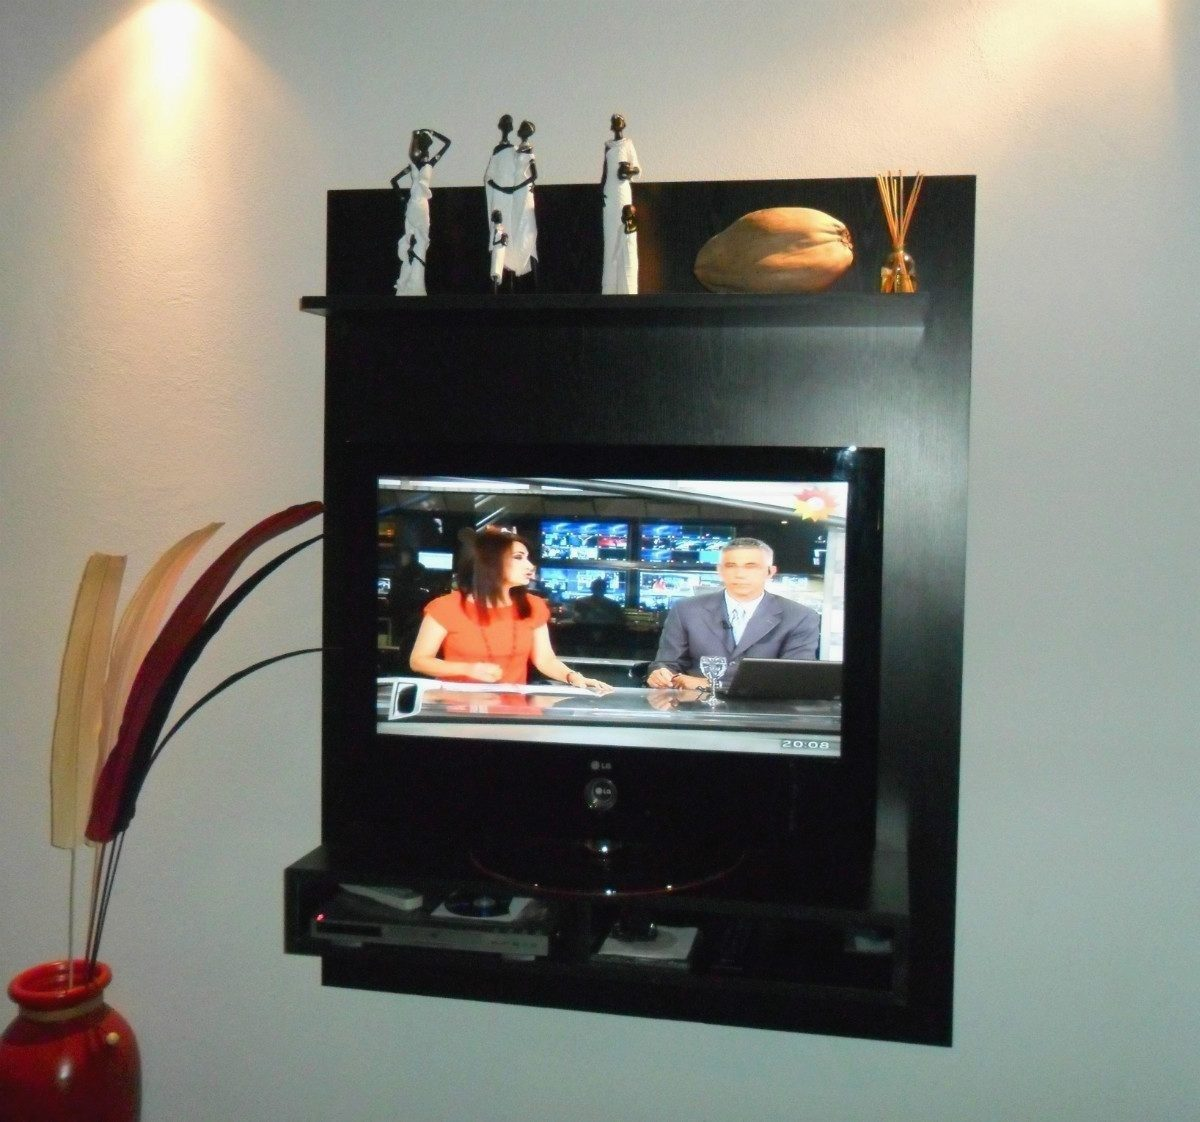 Muebles De Tv Led. Muebles De Tv Led. Muebles De Tv Led. Modulares ...